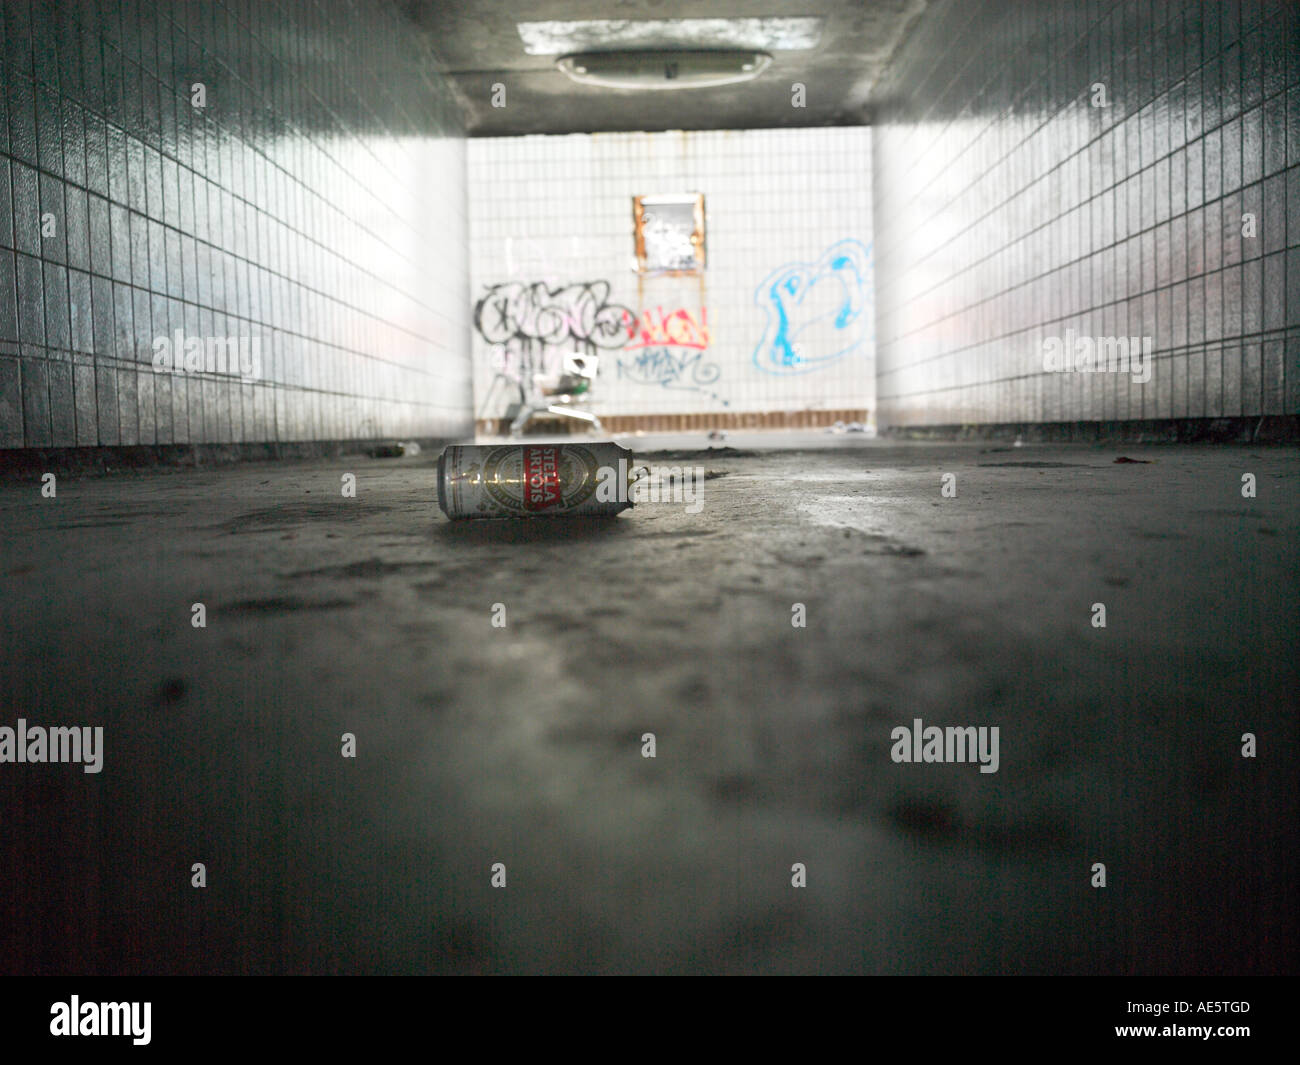 Shopping trolly used by homeless person on a Manchester underpass with graffitti on wall - Stock Image